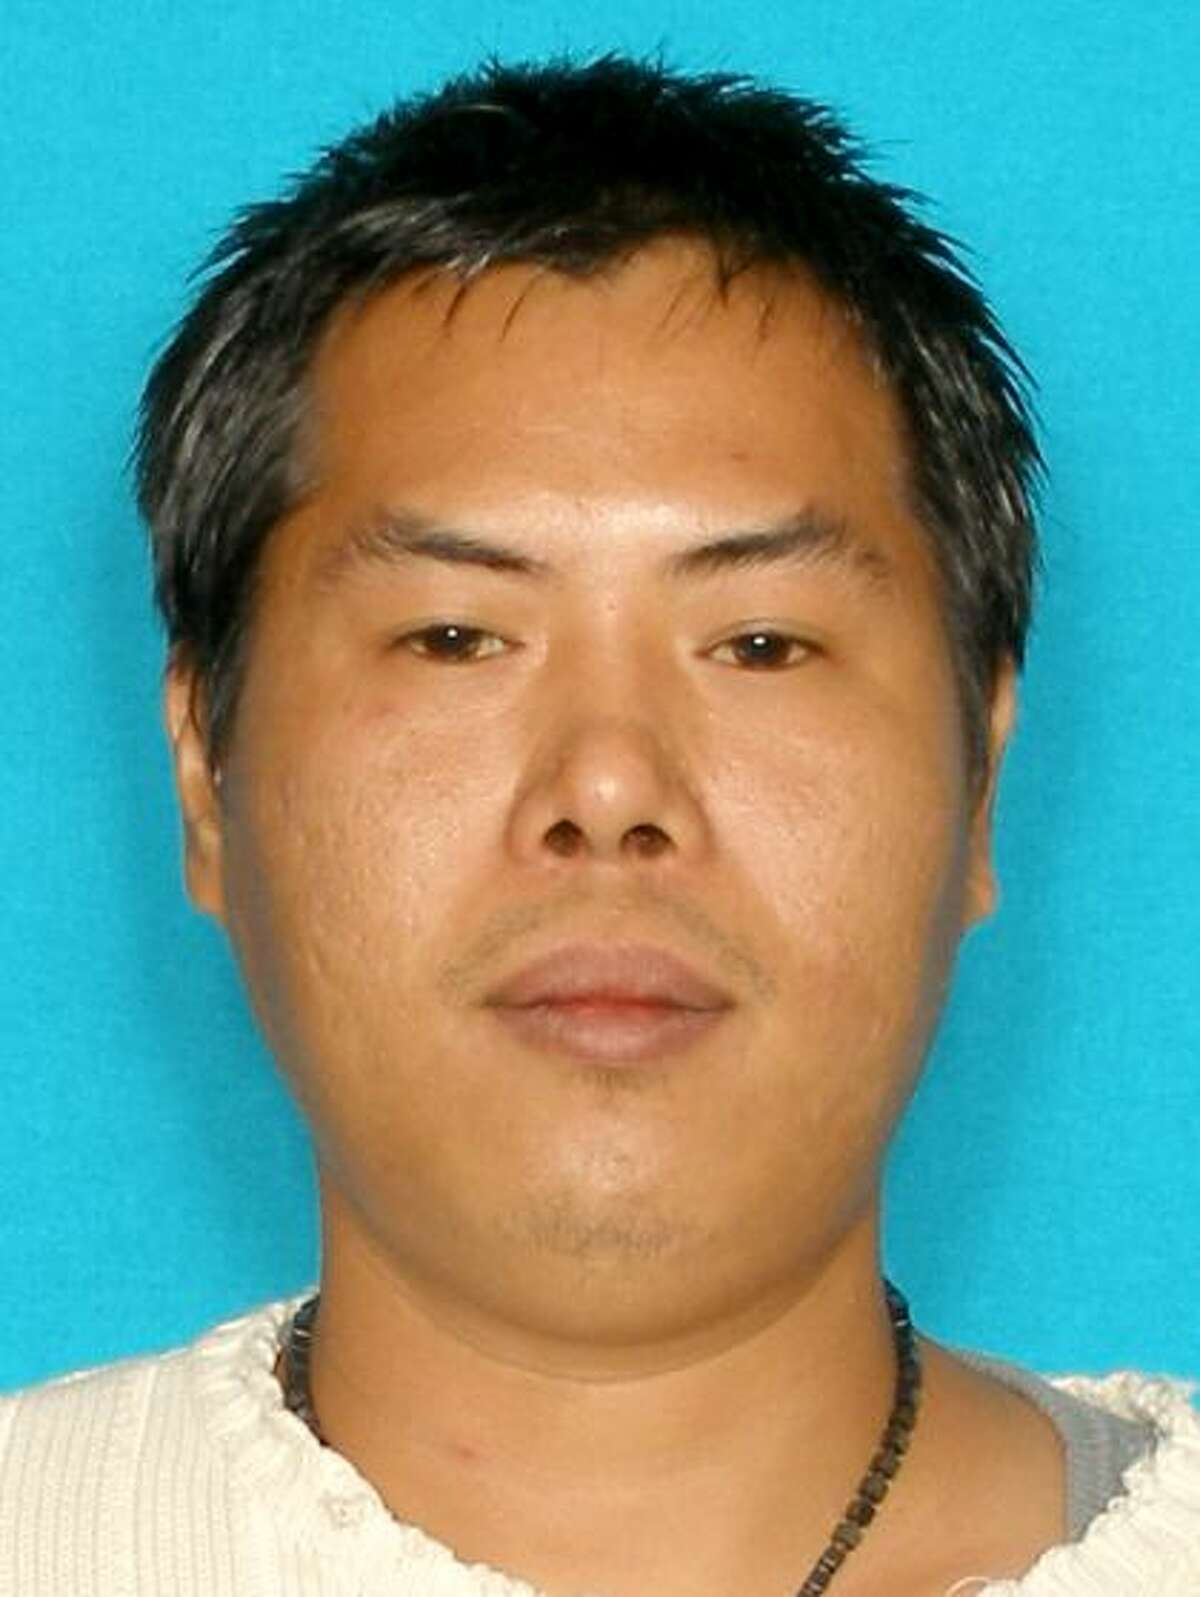 Loc Truong Tieu, 34, was last seen on Tuesday evening.